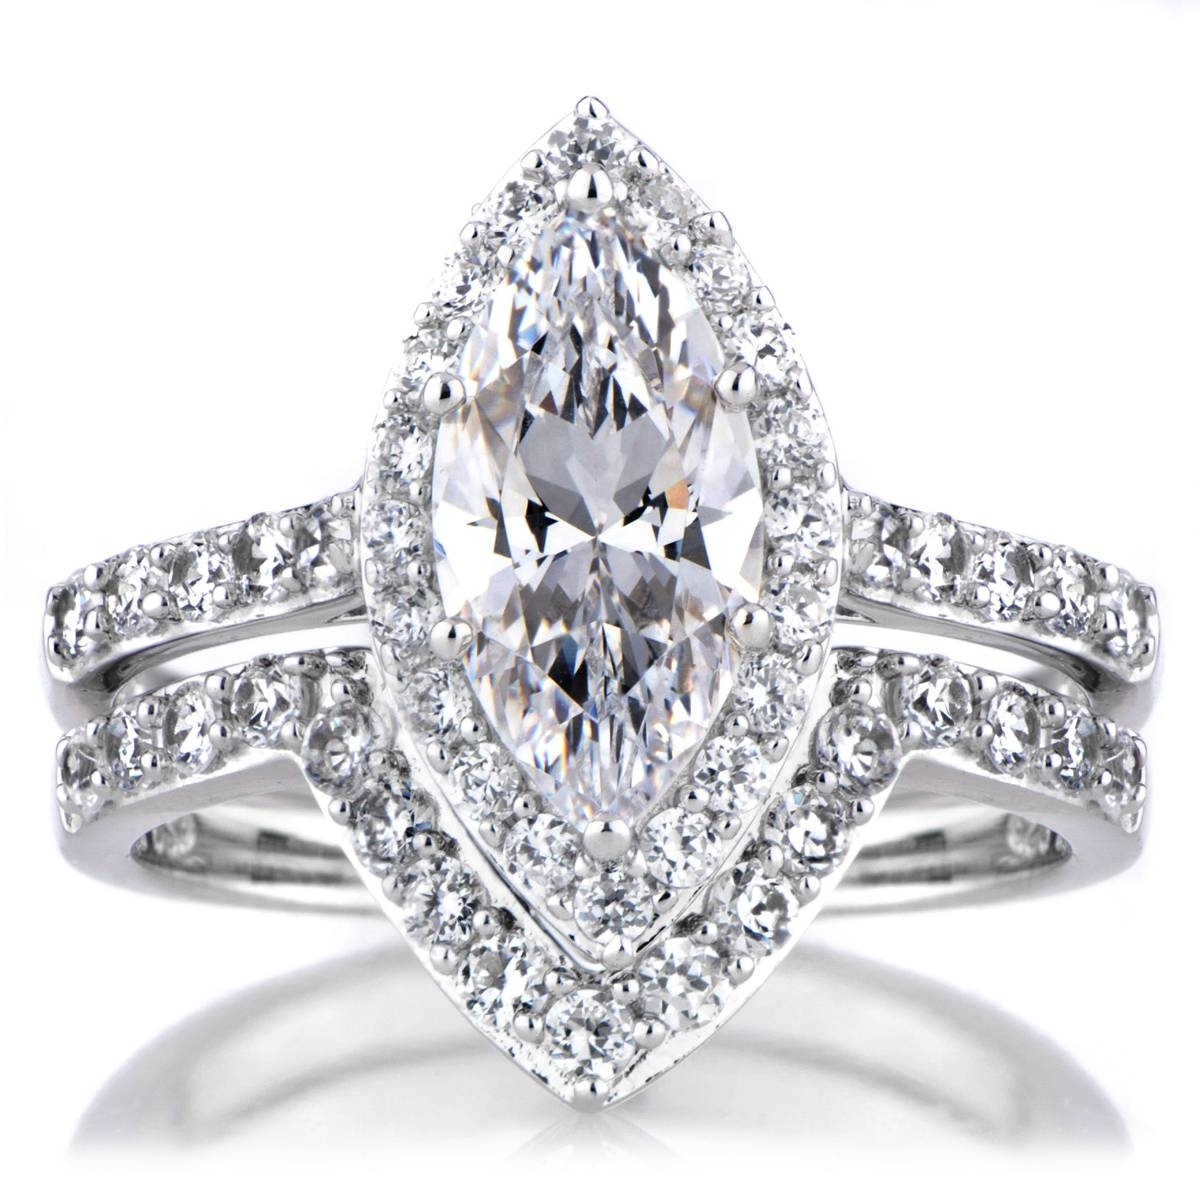 Padgett's Marquise Cut Cz Engagement Ring And Guard Set Intended For Marquis Wedding Bands (View 13 of 15)